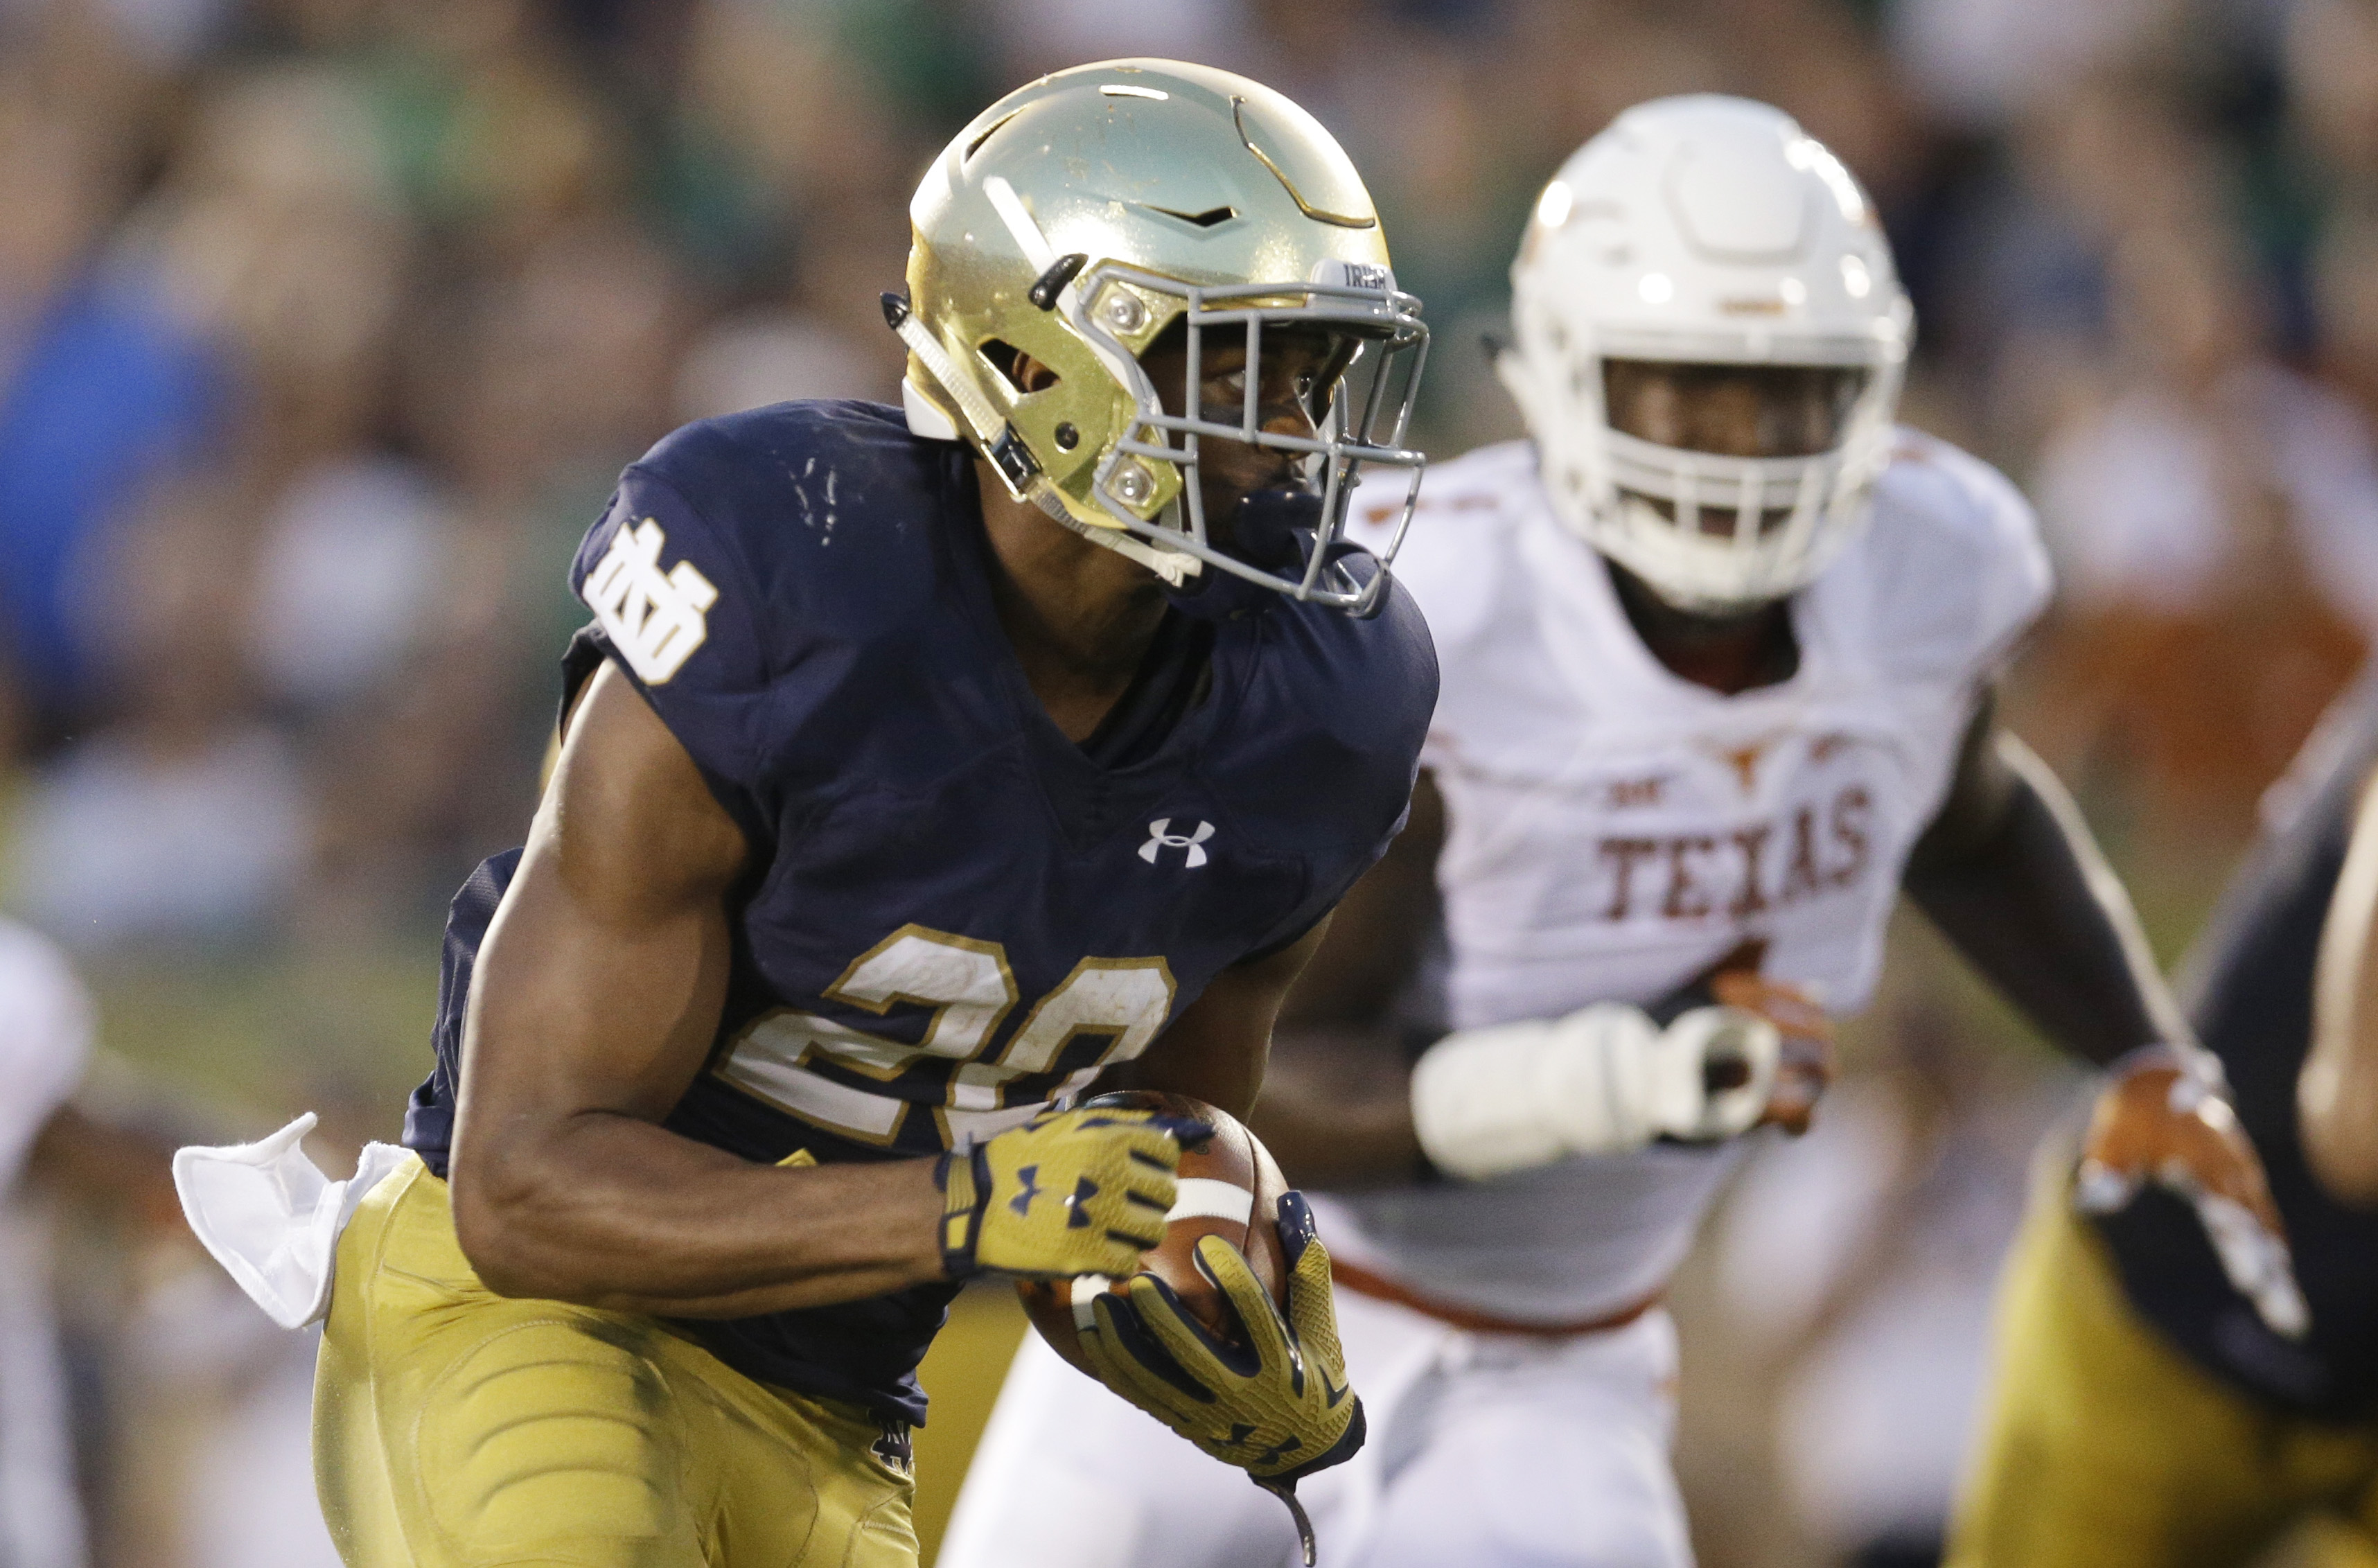 In this Sept. 5, 2015, photo, Notre Dame running back C.J. Prosise runs with the ball during the first half of an NCAA college football game against Texas in South Bend, Ind. .Prosise believes he could play linebacker for Notre Dame, if needed. For now, t